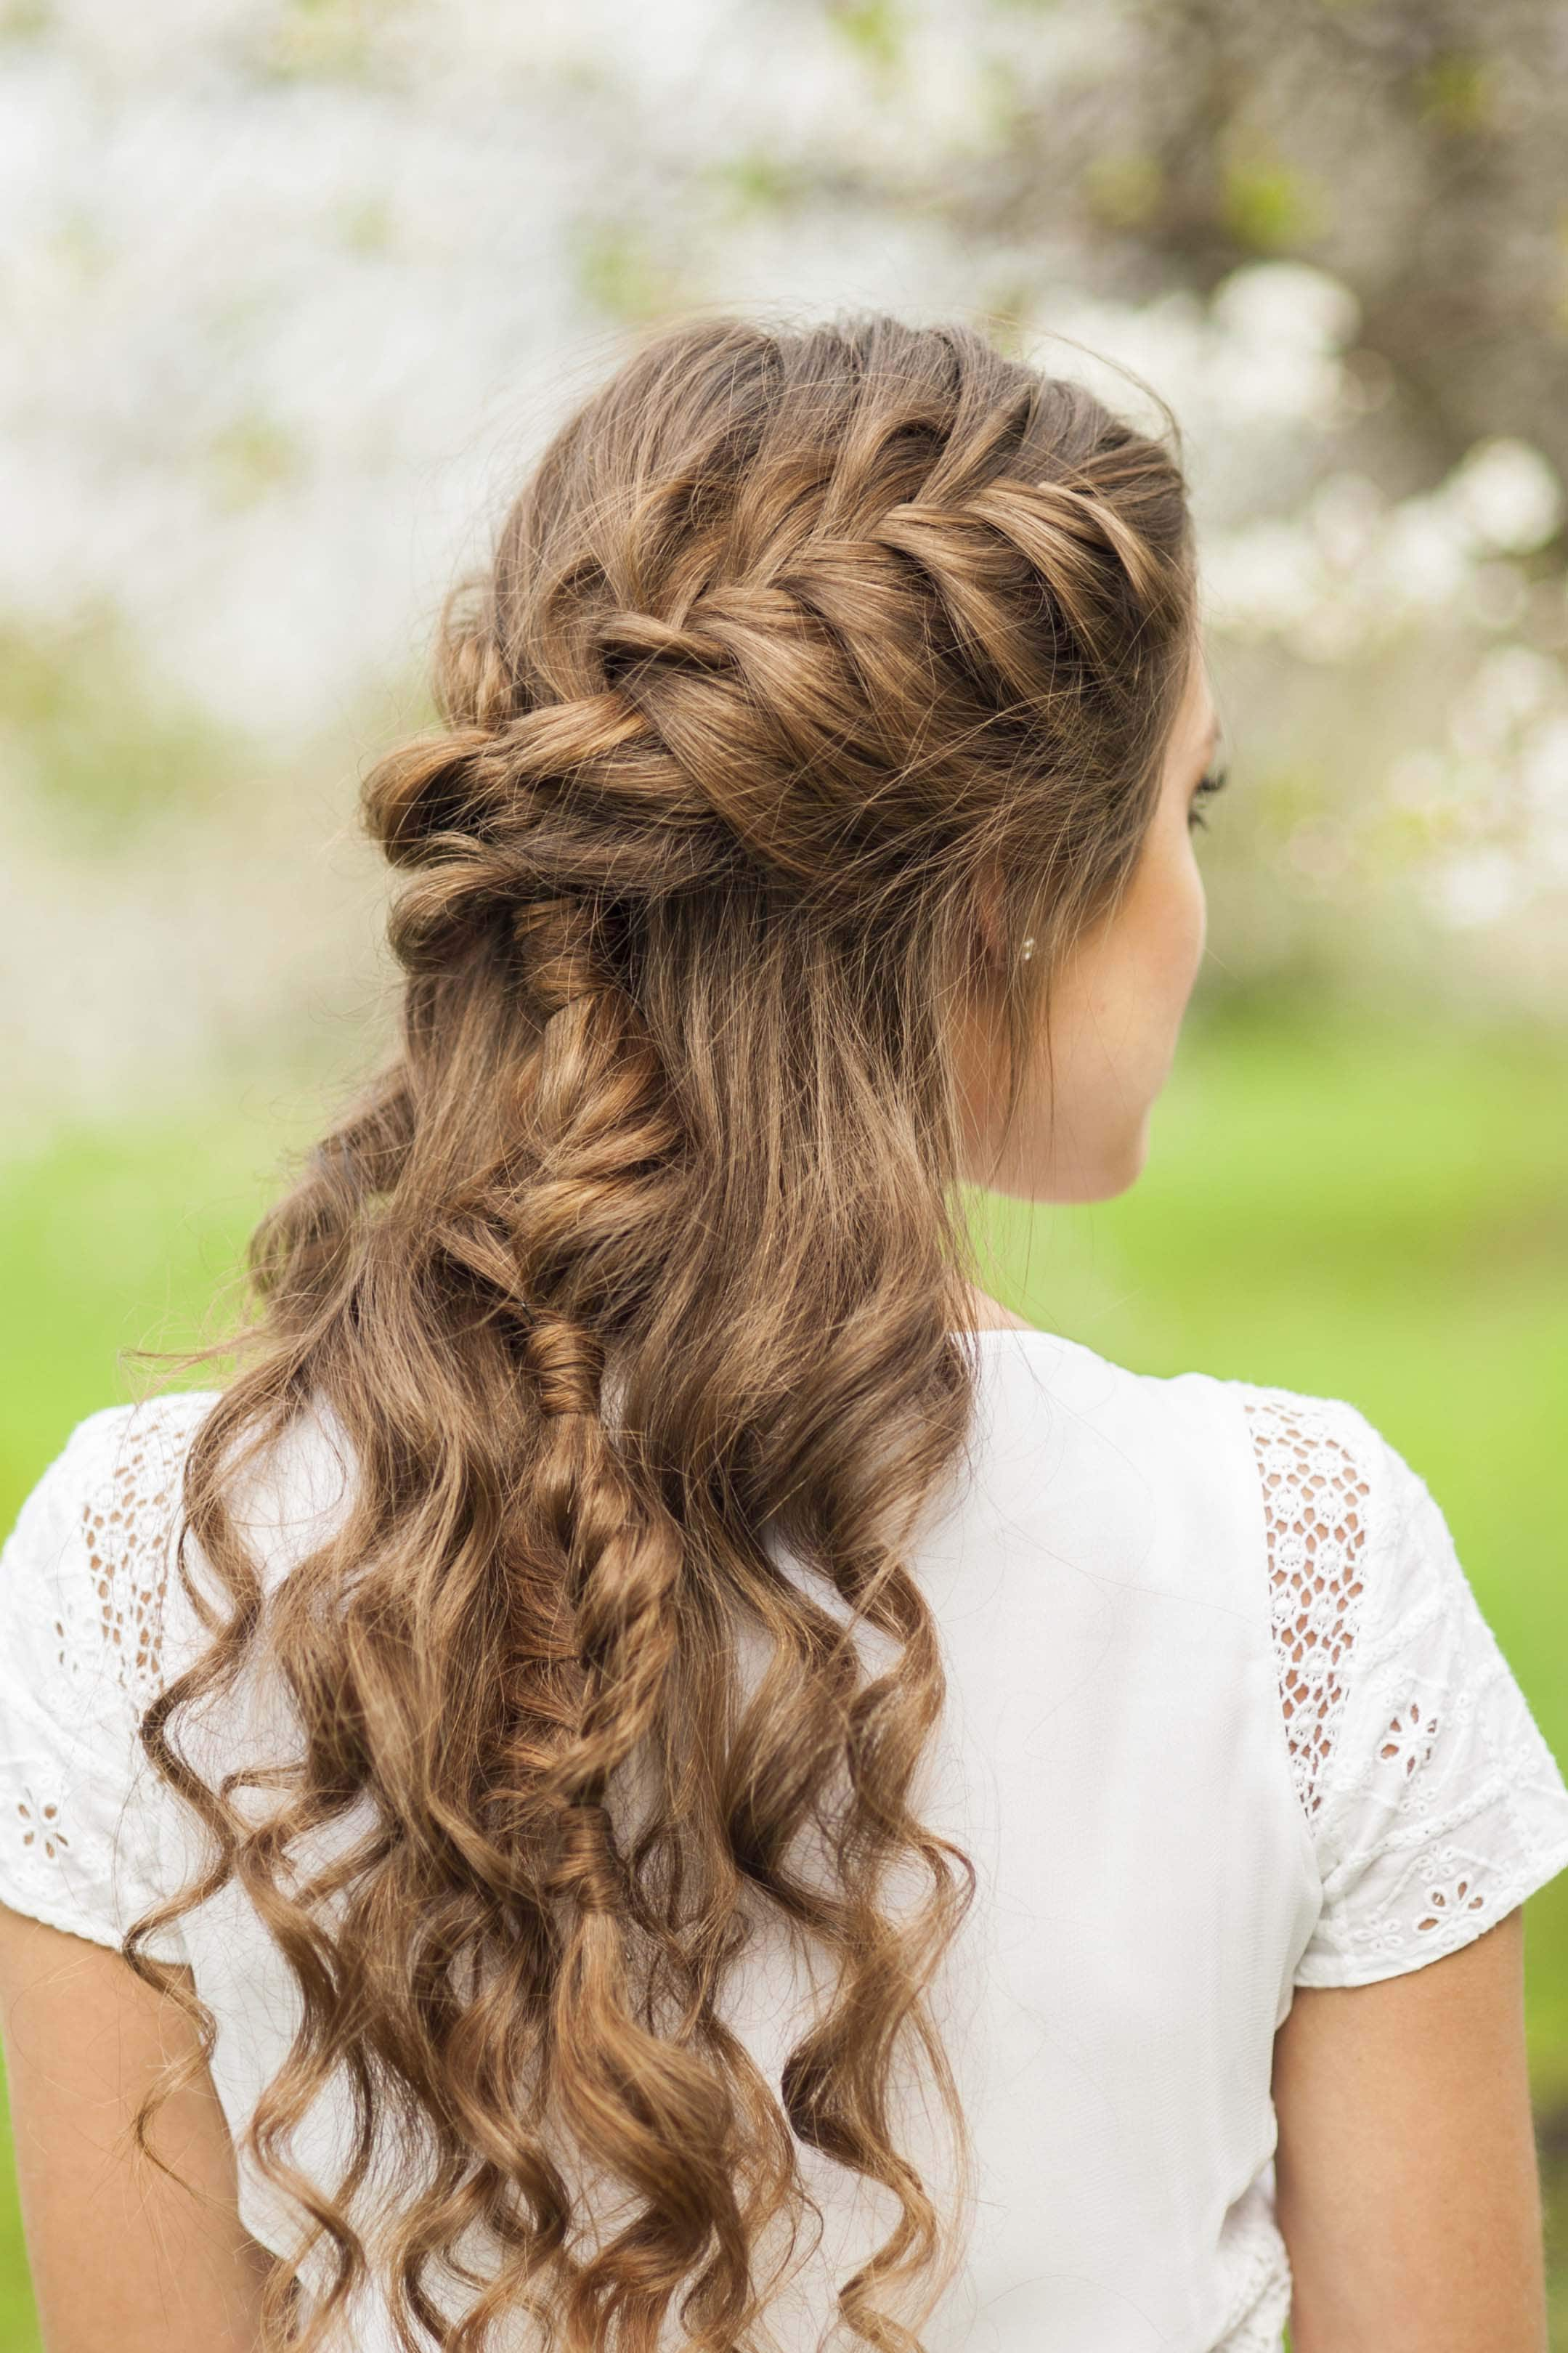 22 Stylish And Super Easy Hairstyles For Naturally Curly Hair